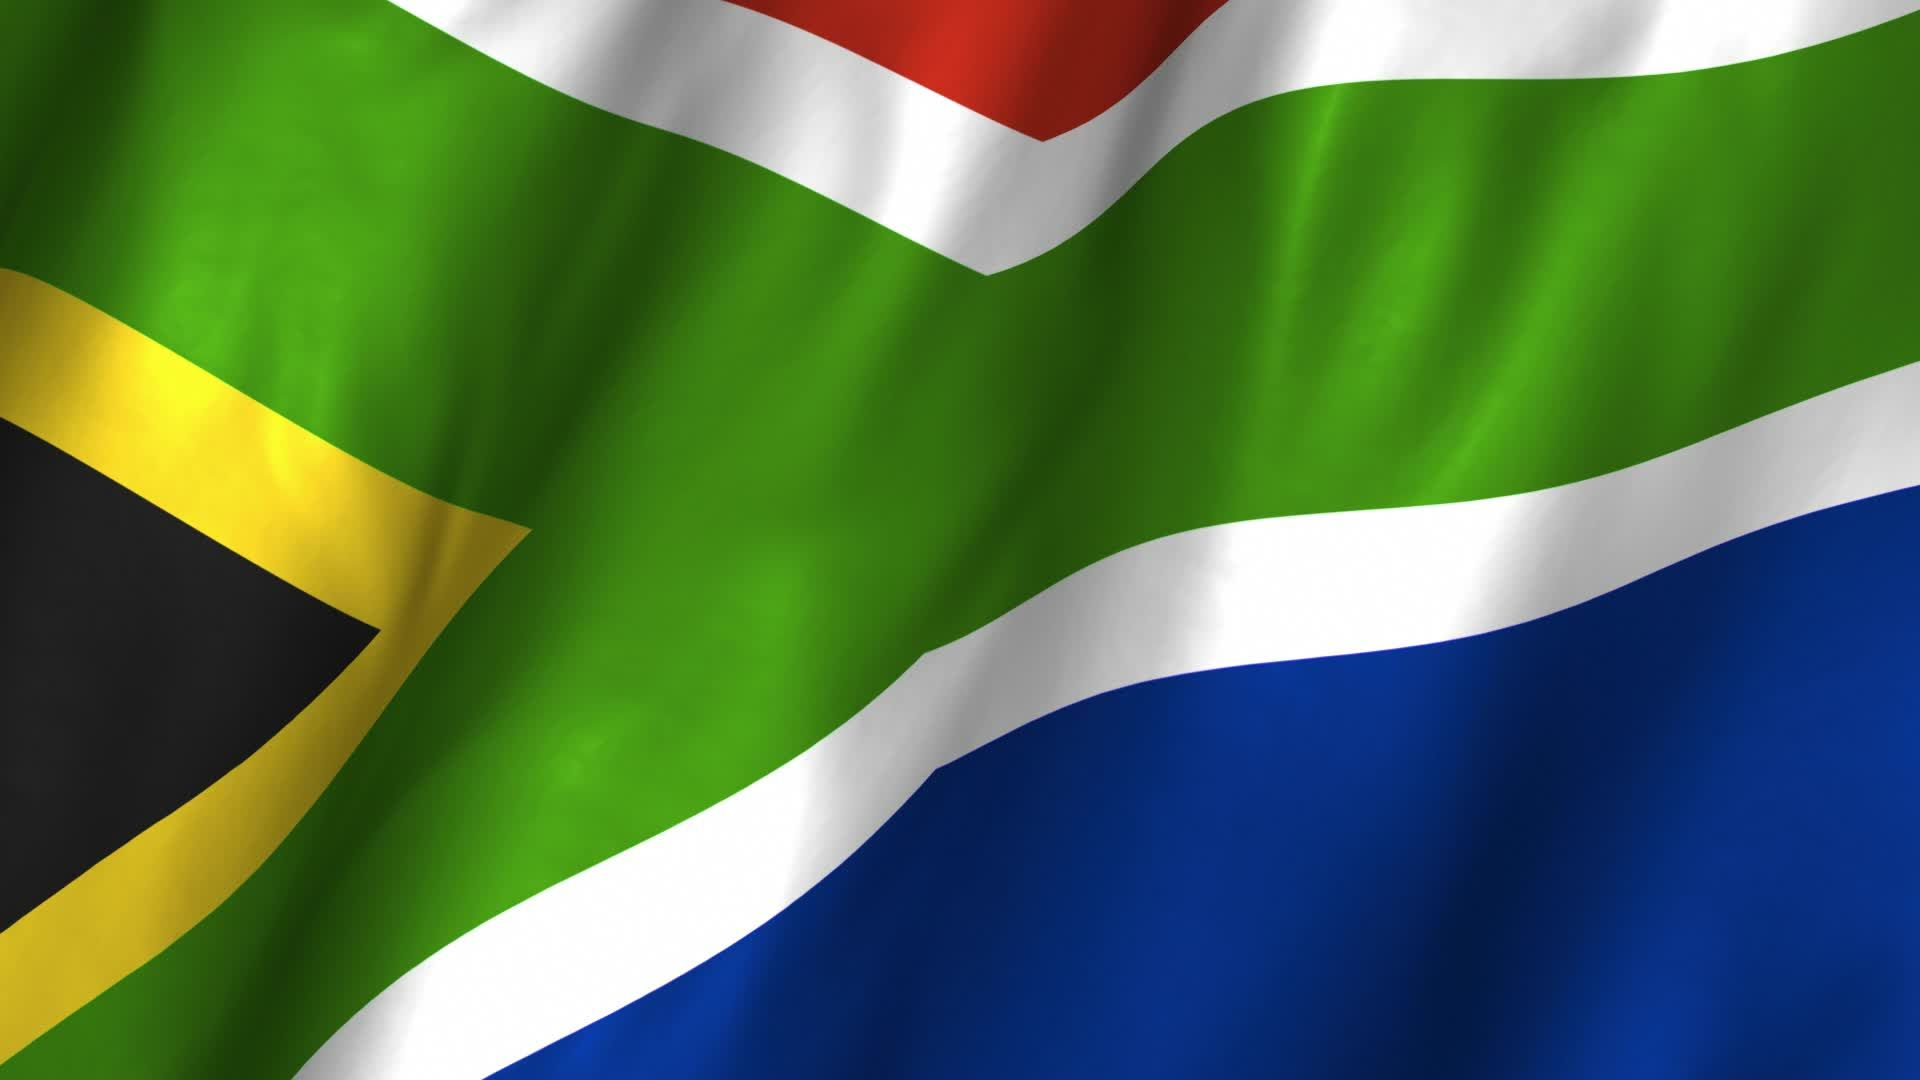 1920x1080 South Africa National Flag Wallpapers